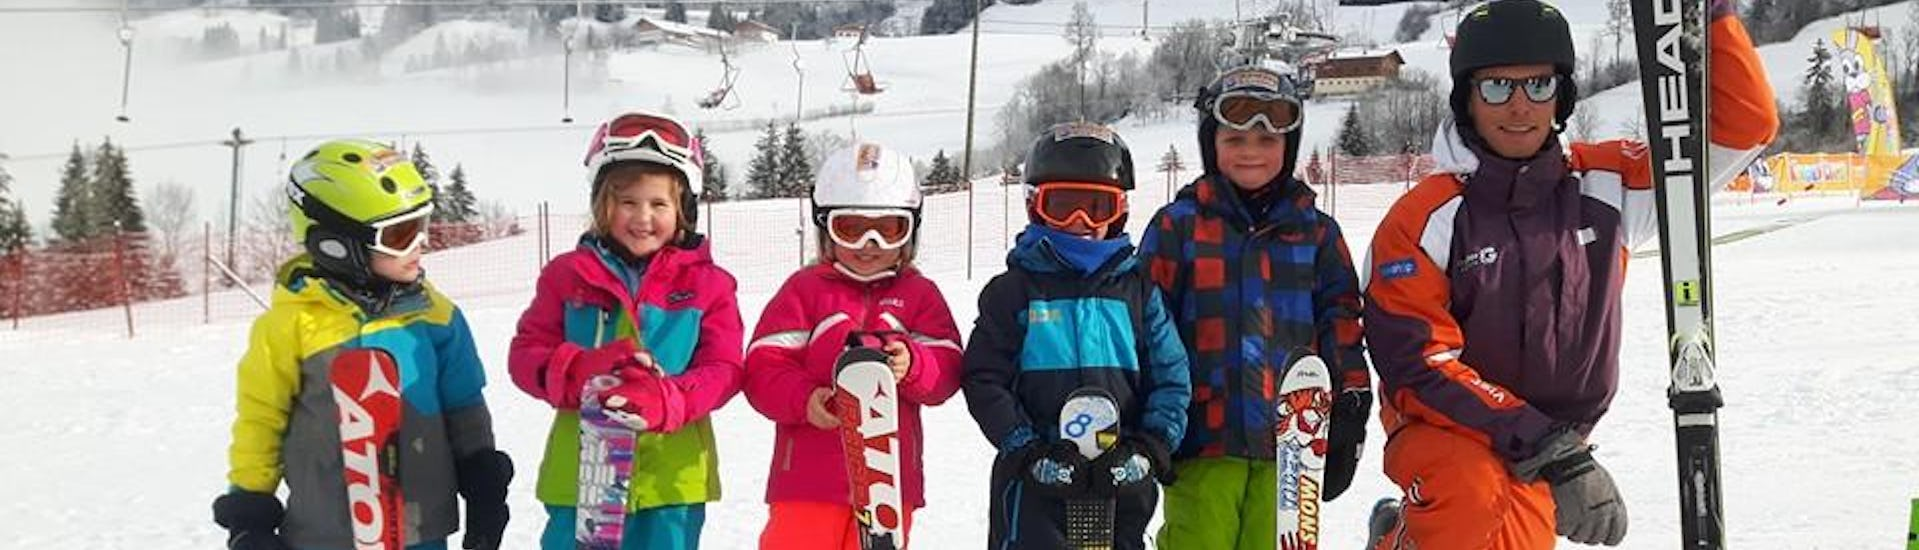 """Ski Lessons """"All-in-One"""" for Kids (4-6 years) - All Levels"""